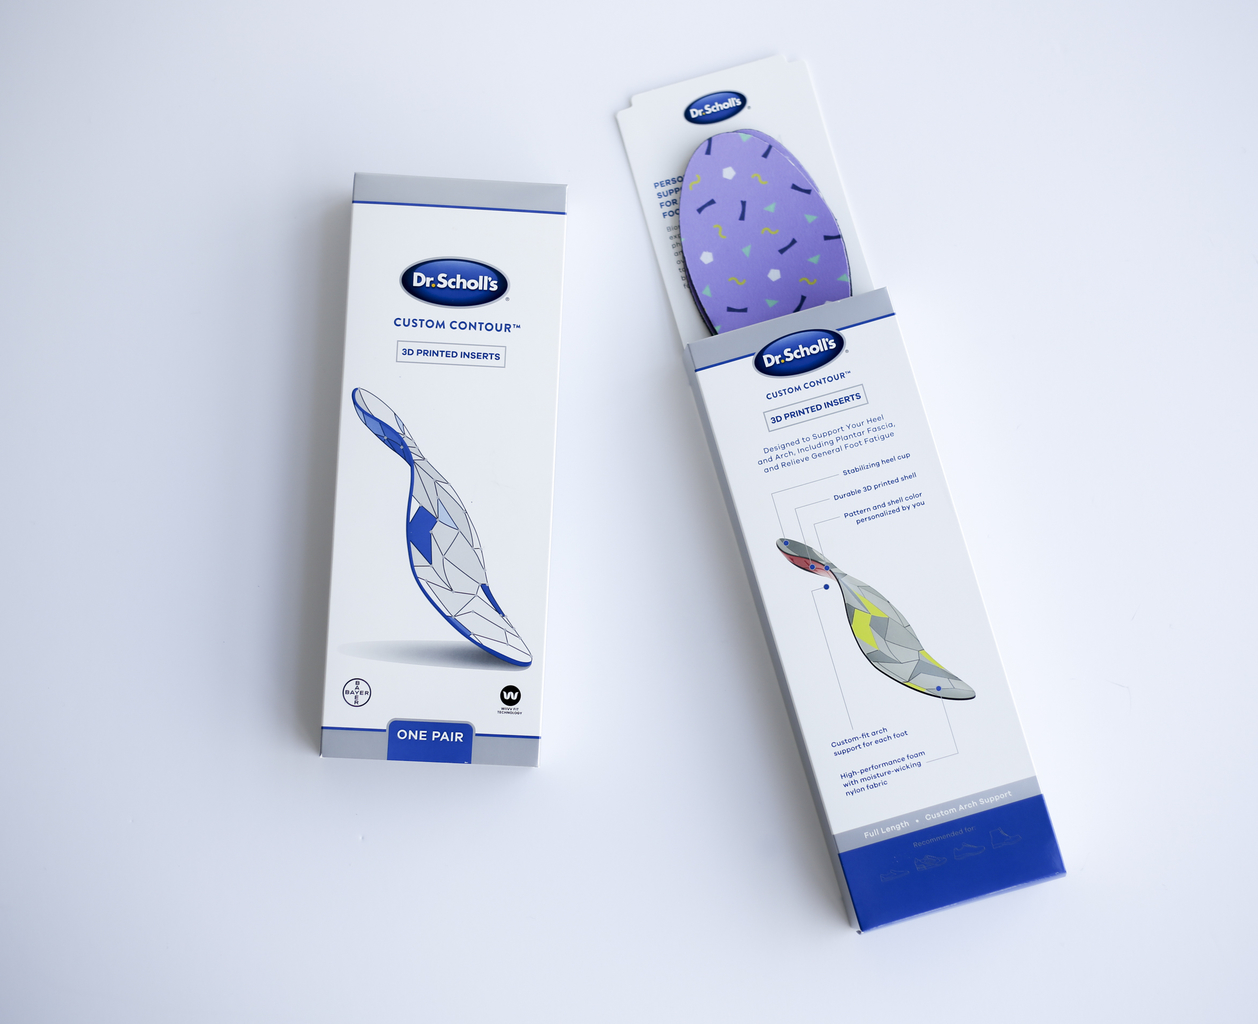 Dr. Scholl's 3D printed insoles.